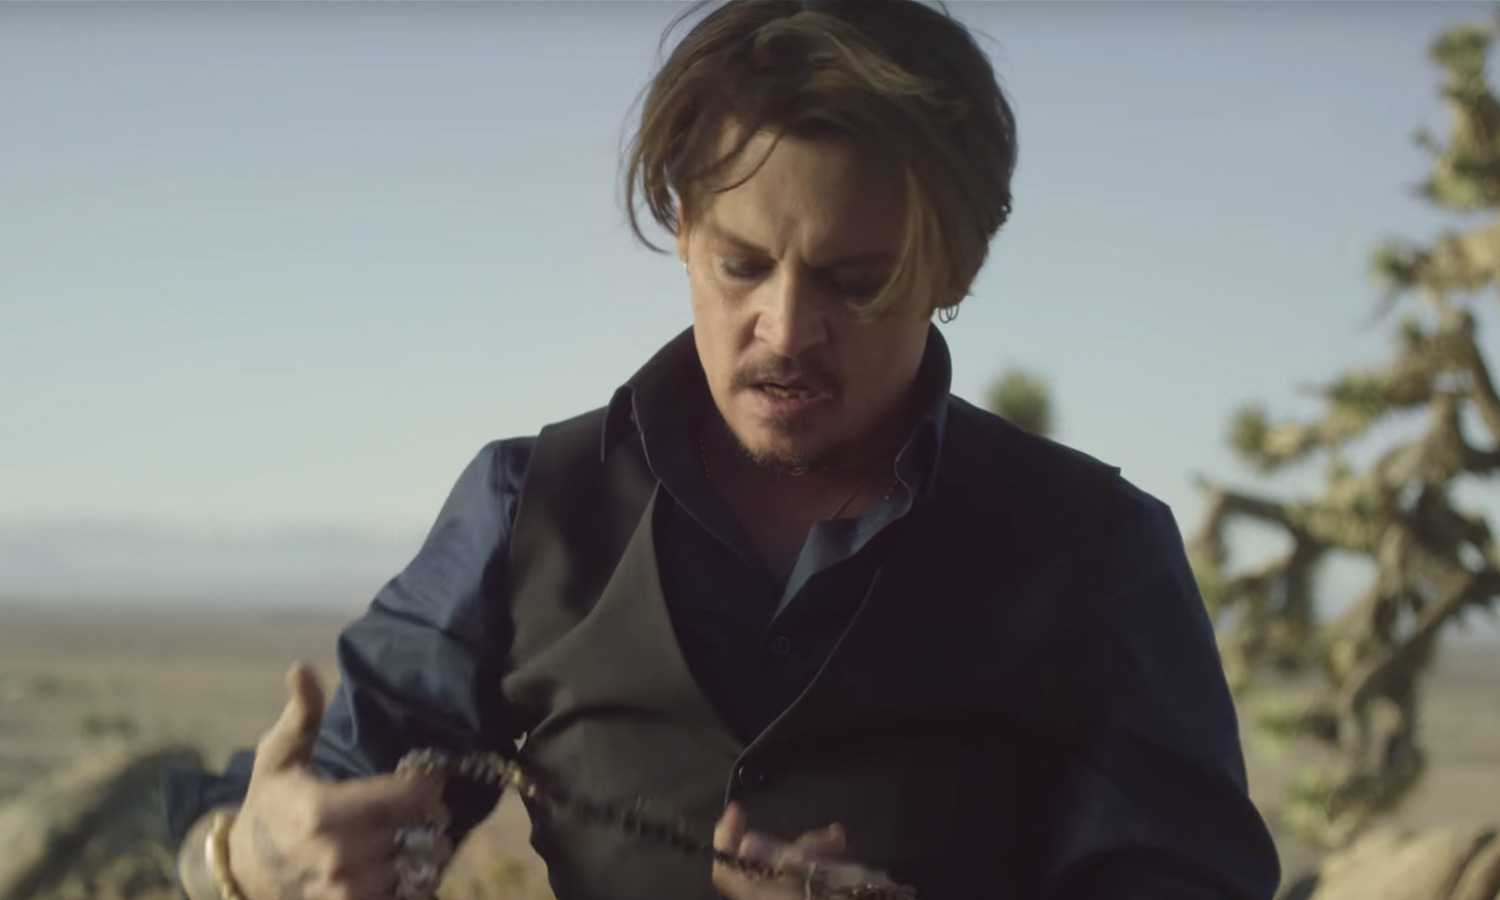 johnny-depp-dior-video-2015-feat